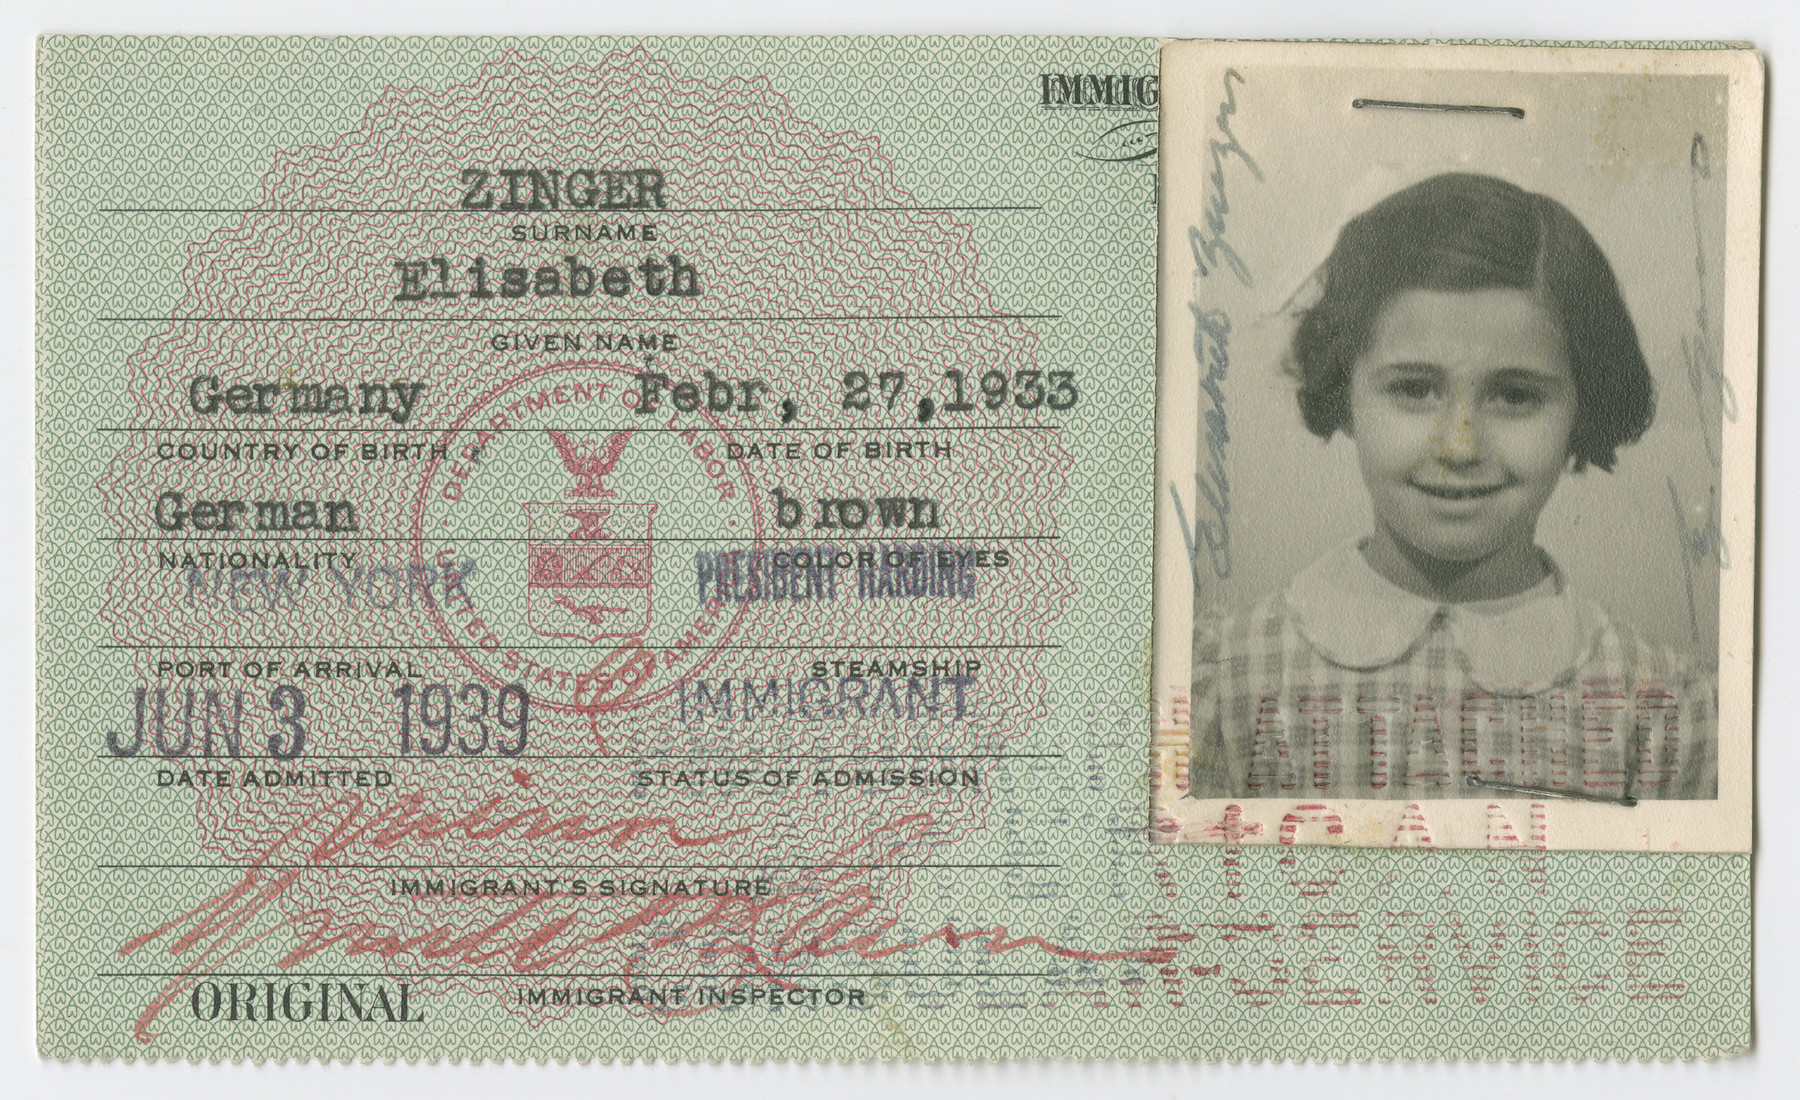 United States Immigrant Identification Card issued to Elisabeth Zinger  It states she was born in Germany though she probably was born in Vienna.